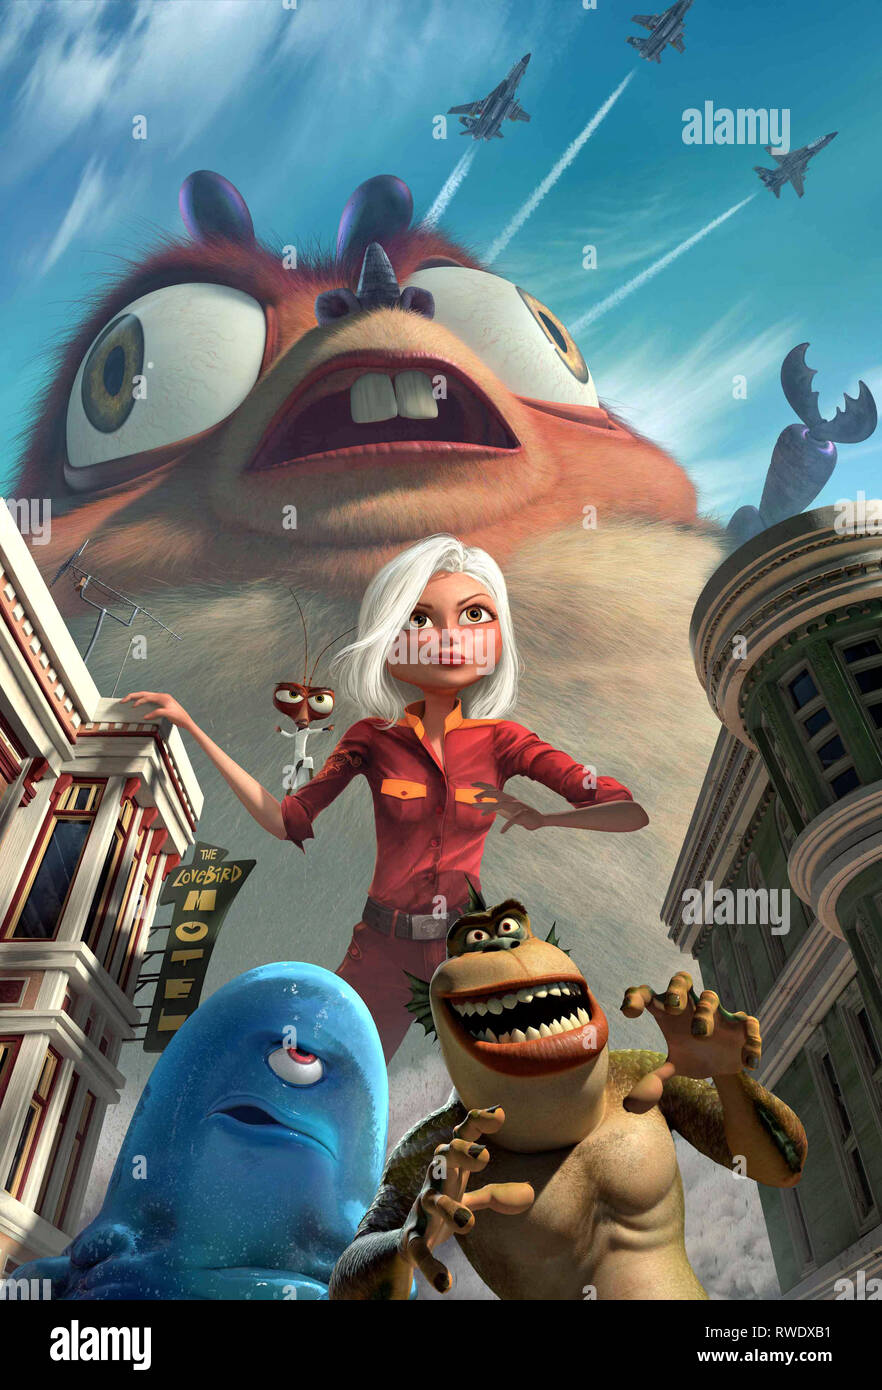 INSECTOSAURUS,COCKROACH,GINORMICA,LINK,B.O.B., MONSTERS VS. ALIENS, 2009 - Stock Image